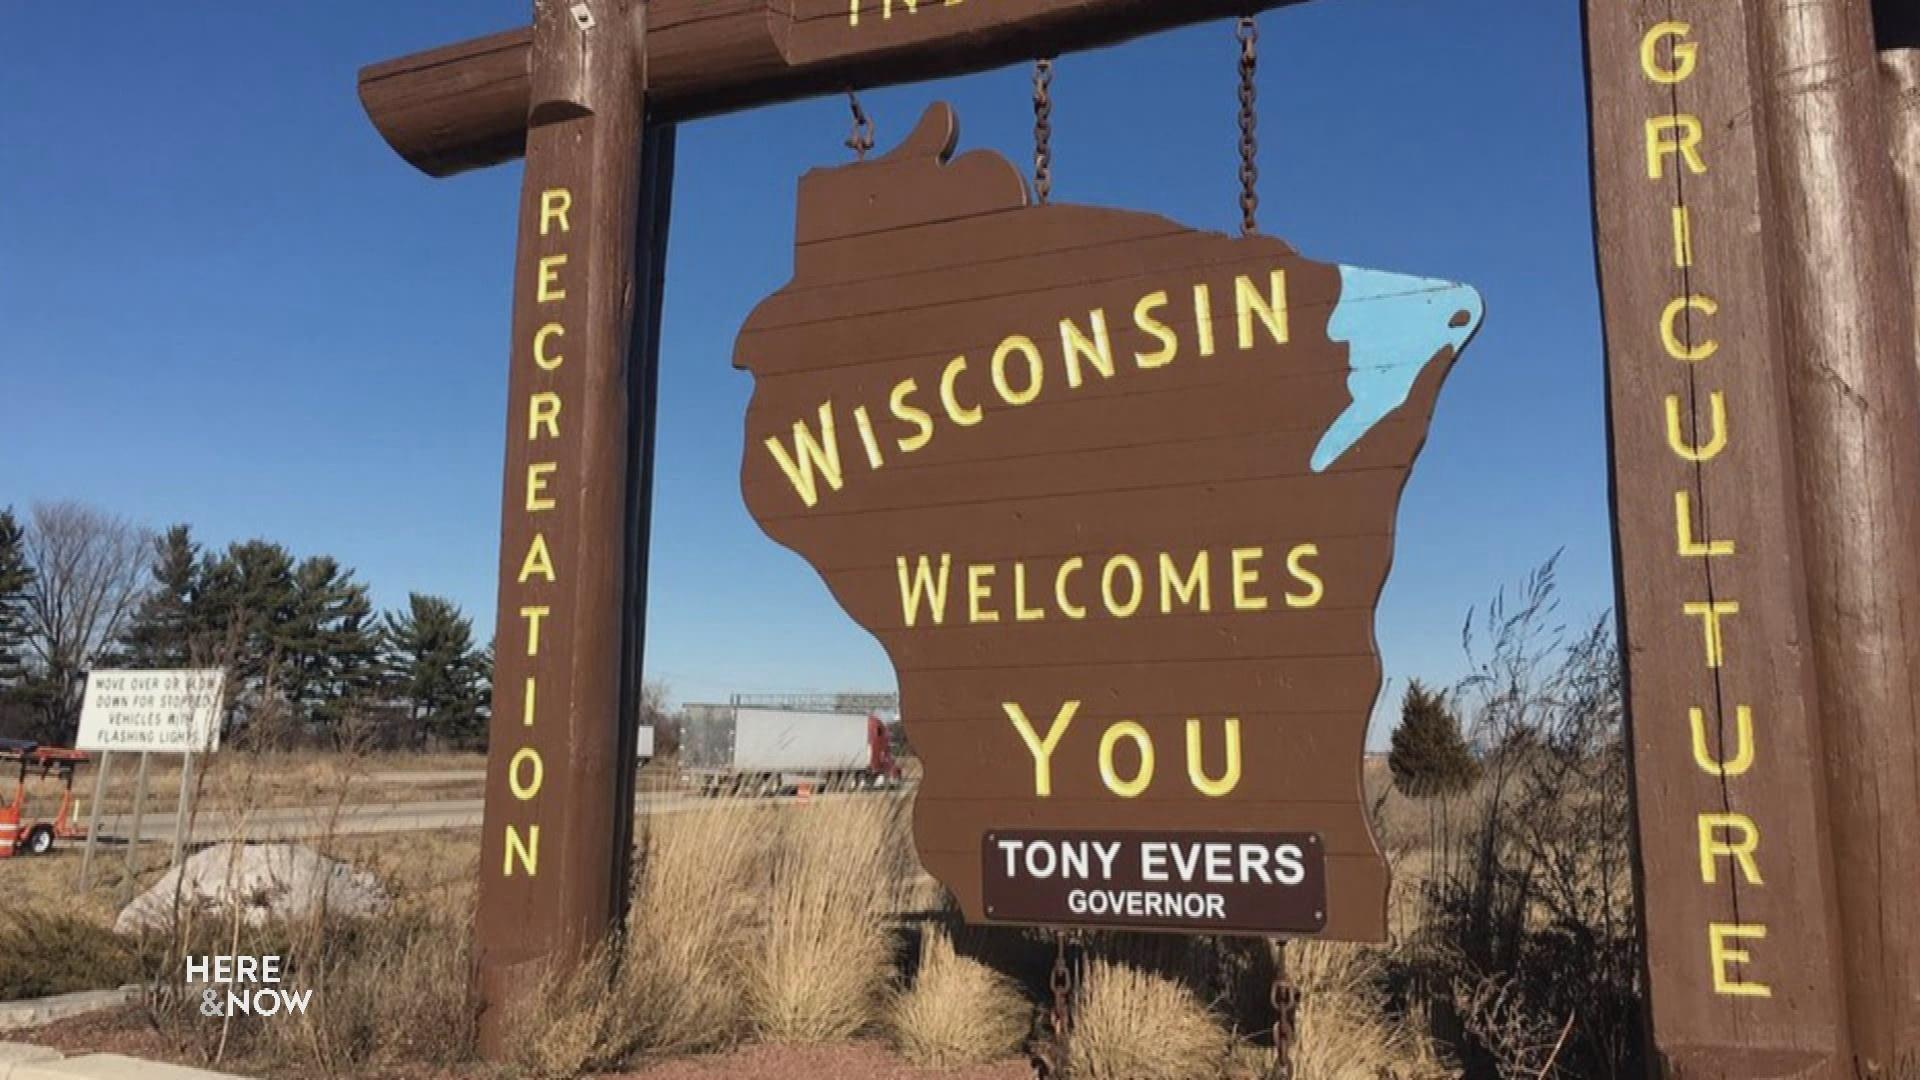 Visitors to Wisconsin Get New Greeting